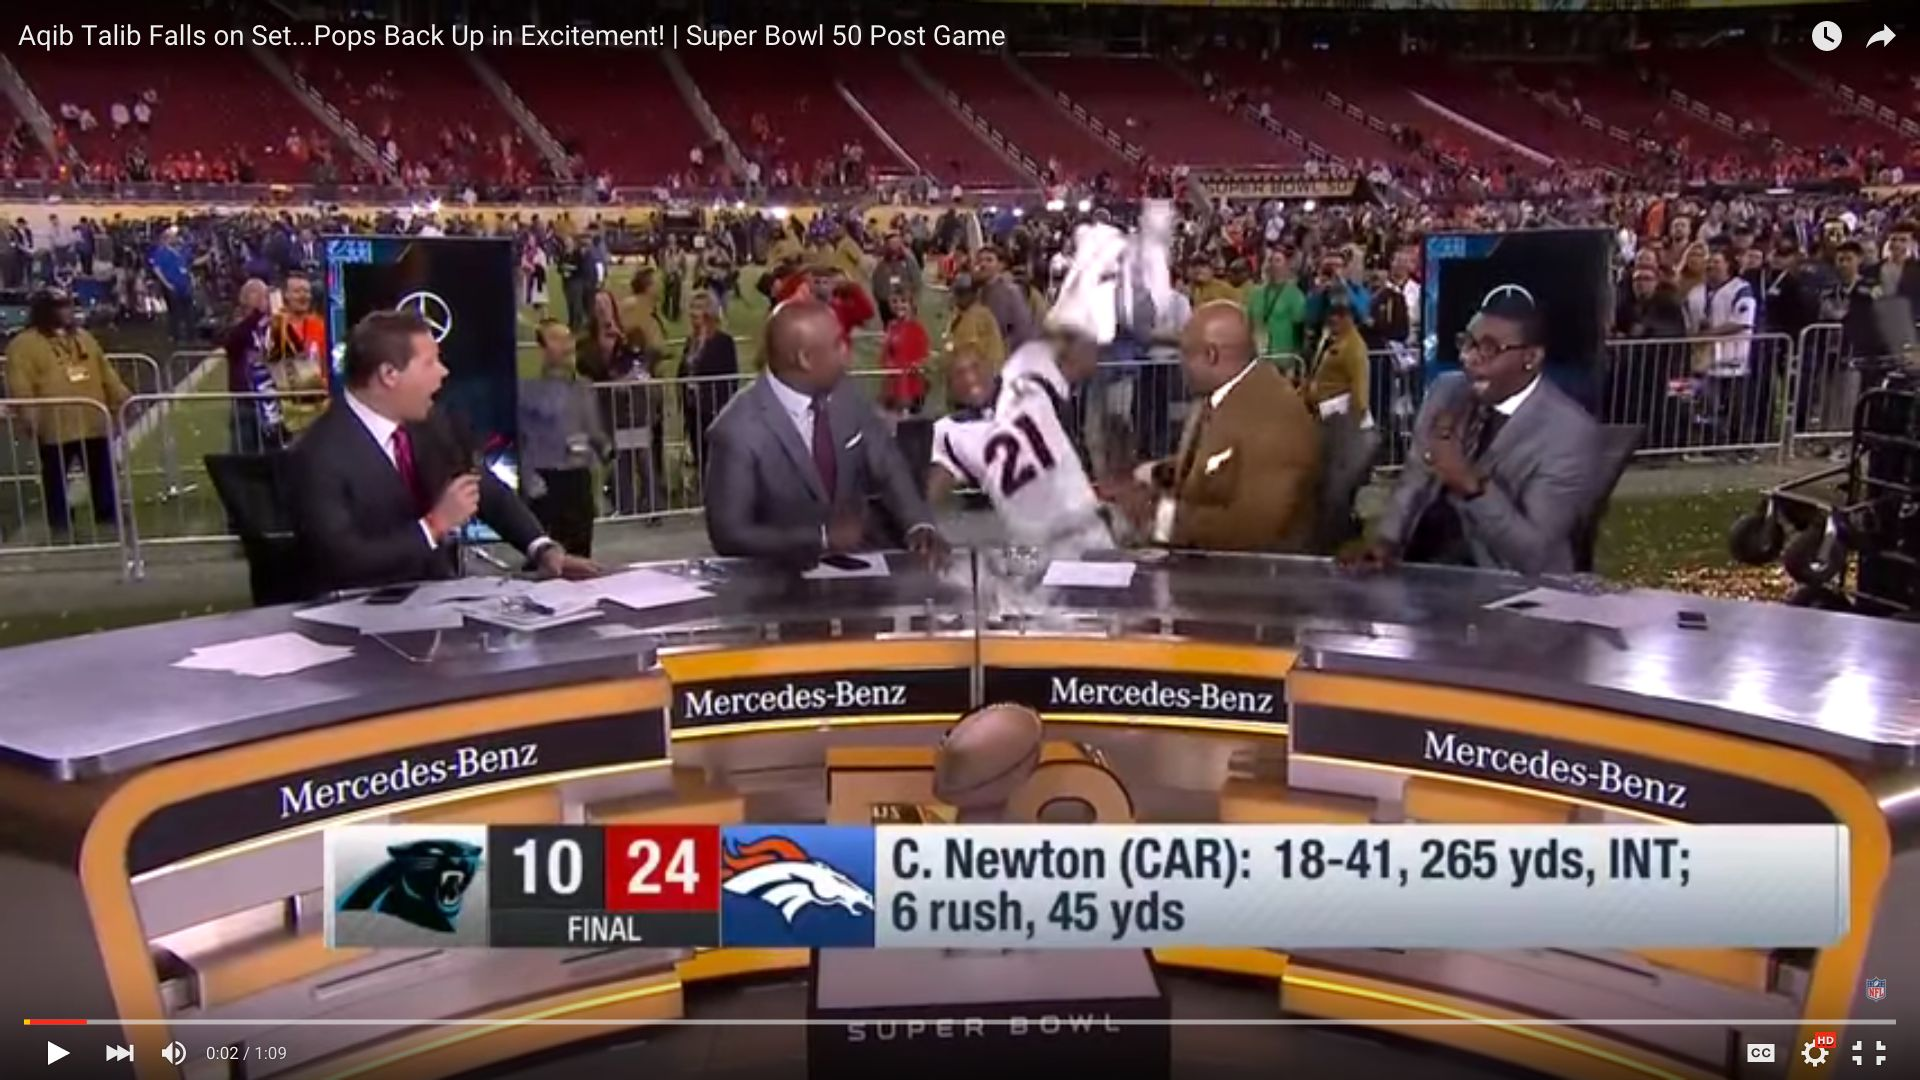 Broncos Cornerback Aqib Talib's wipeout entrance left a panel of NFL broadcasters in stitches.